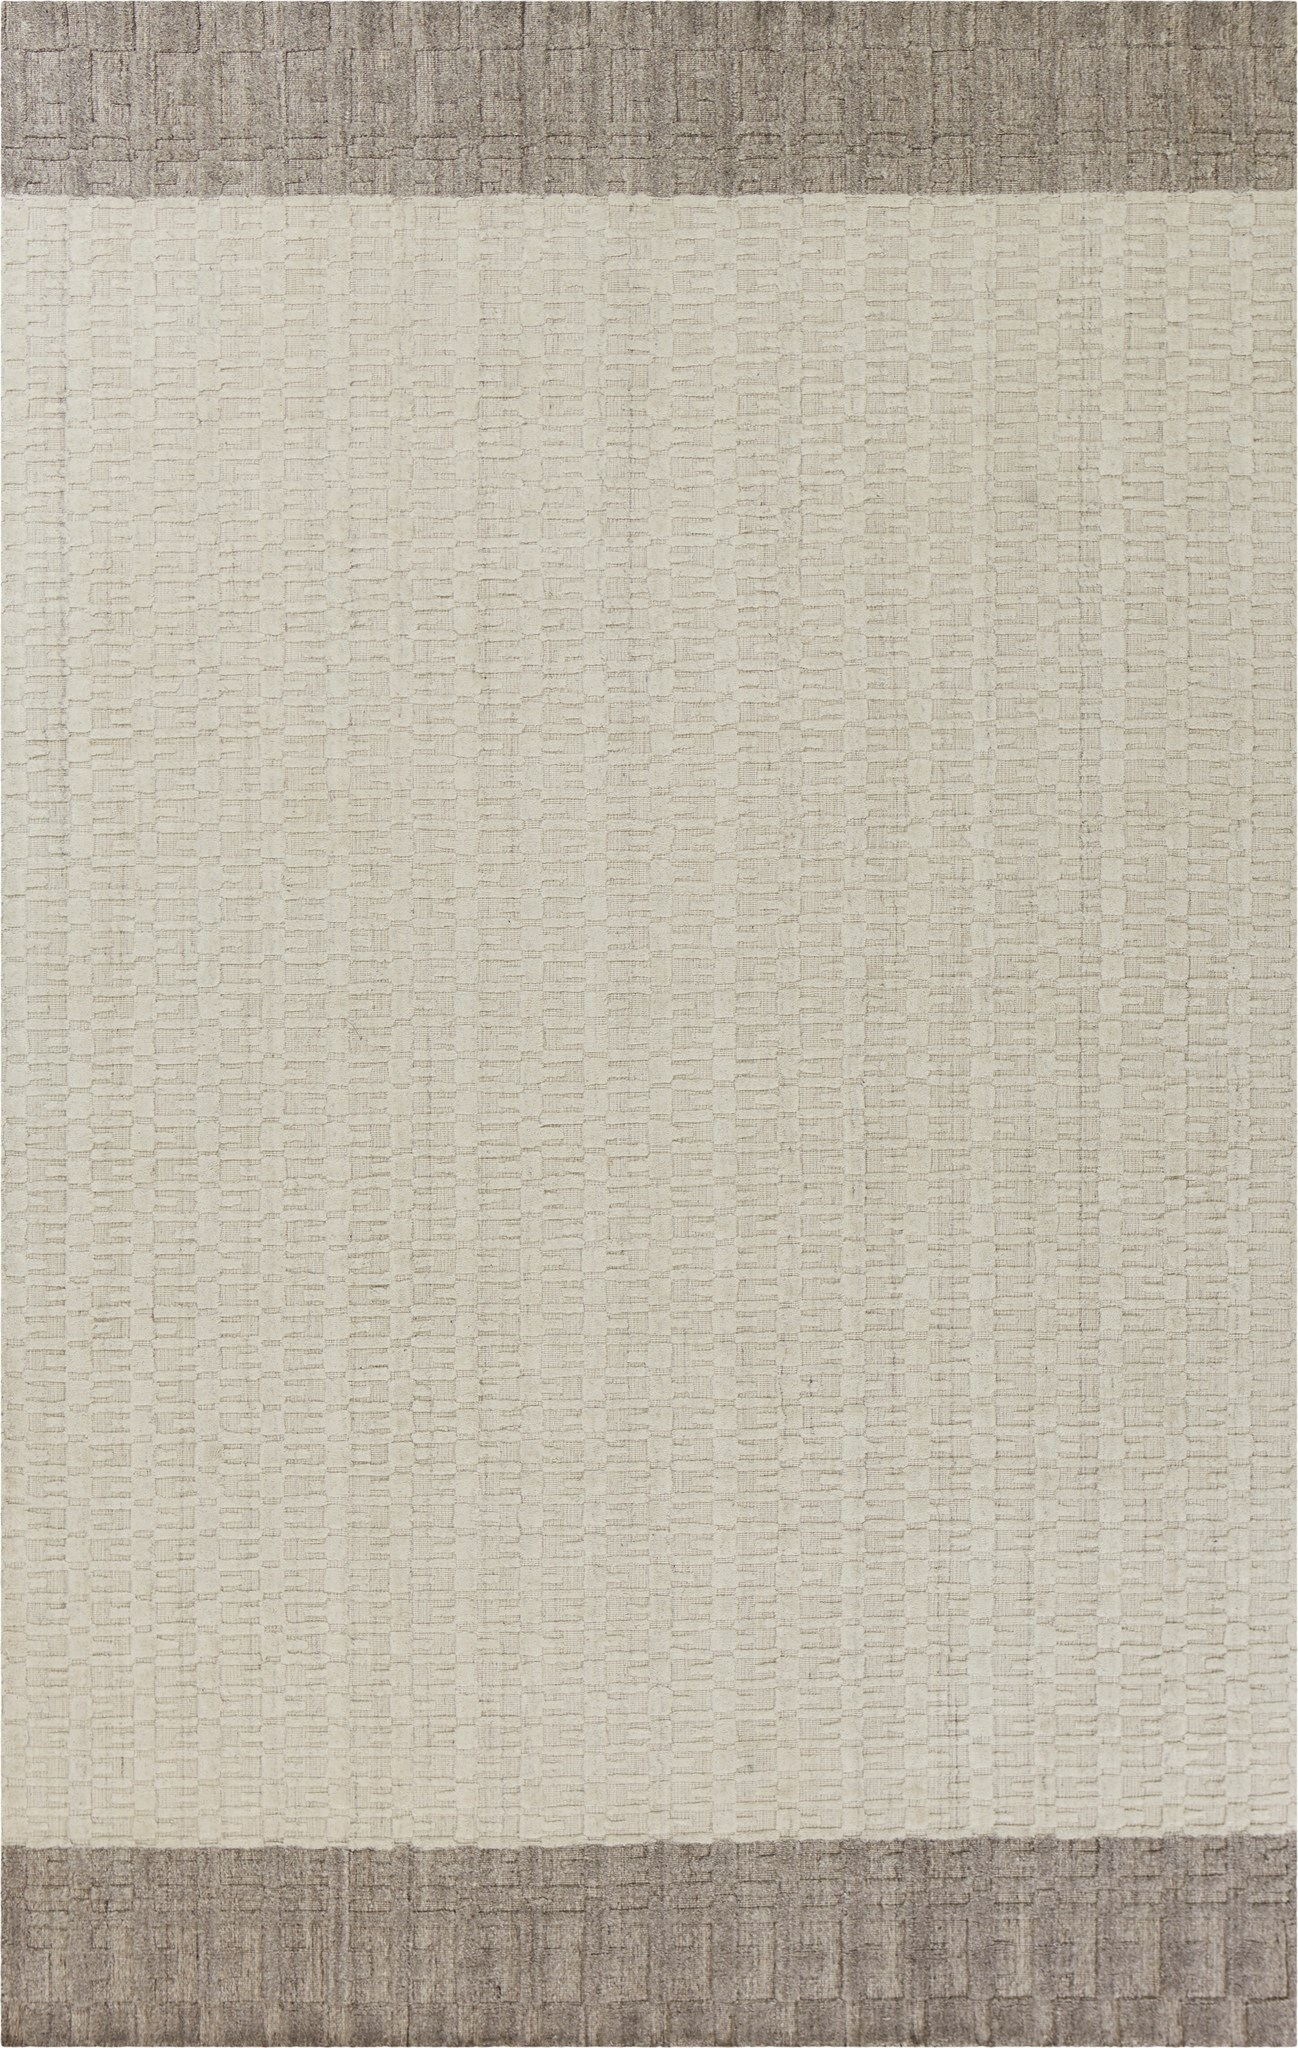 Birch 9256 Ivory/Grey Elements